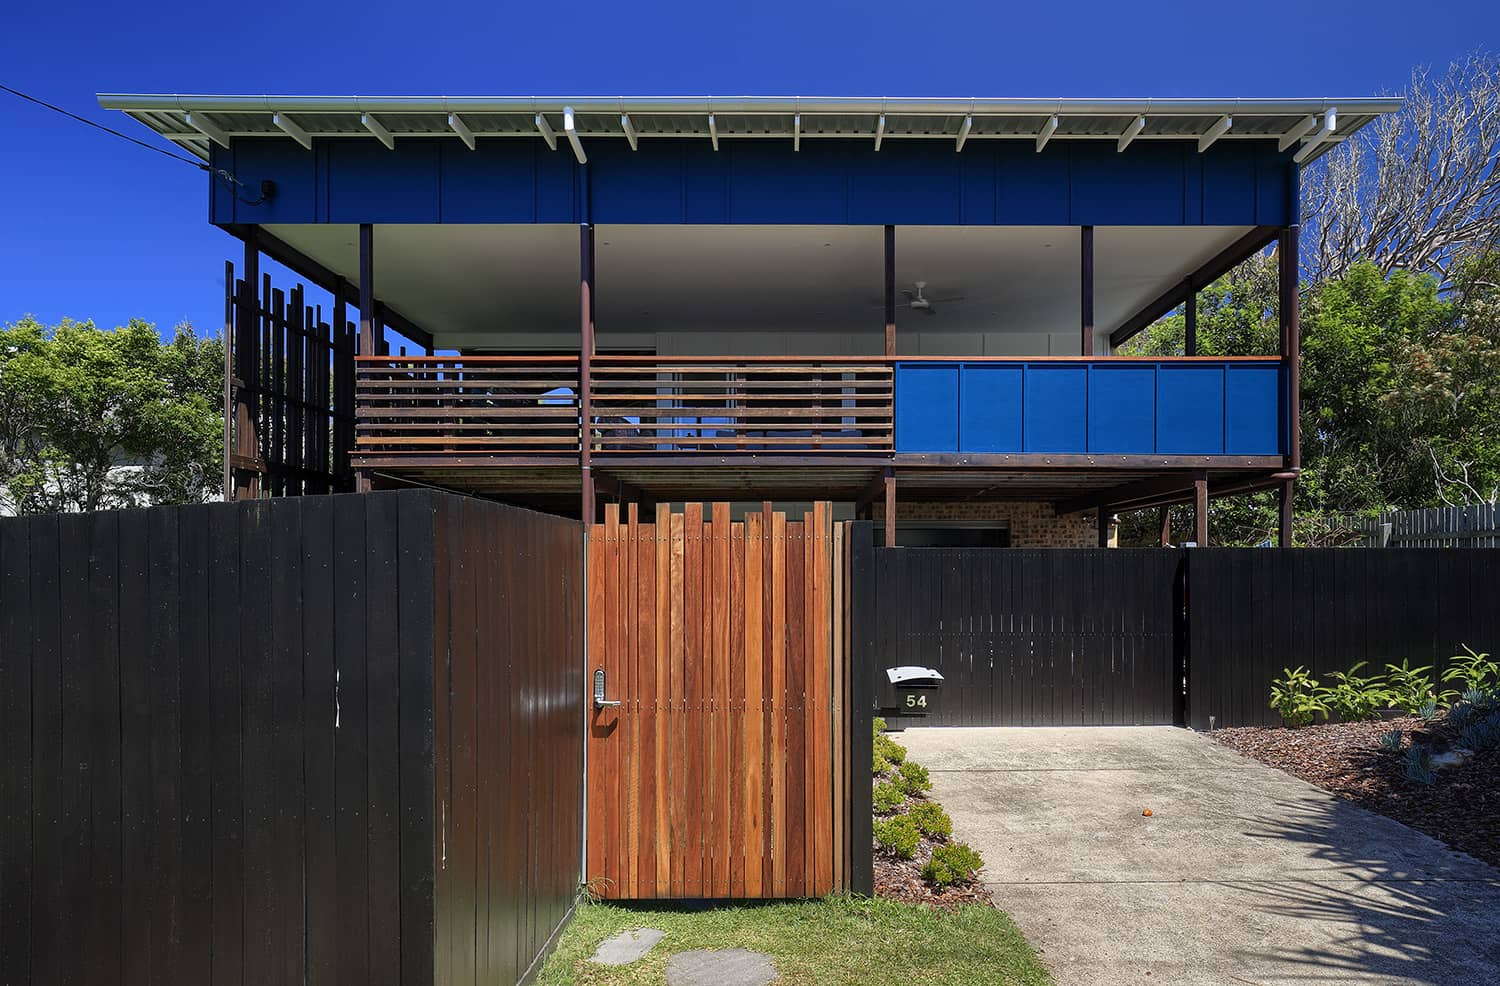 Elanda Street project by mdesign, a building design practice that operates on the Sunshine Coast.